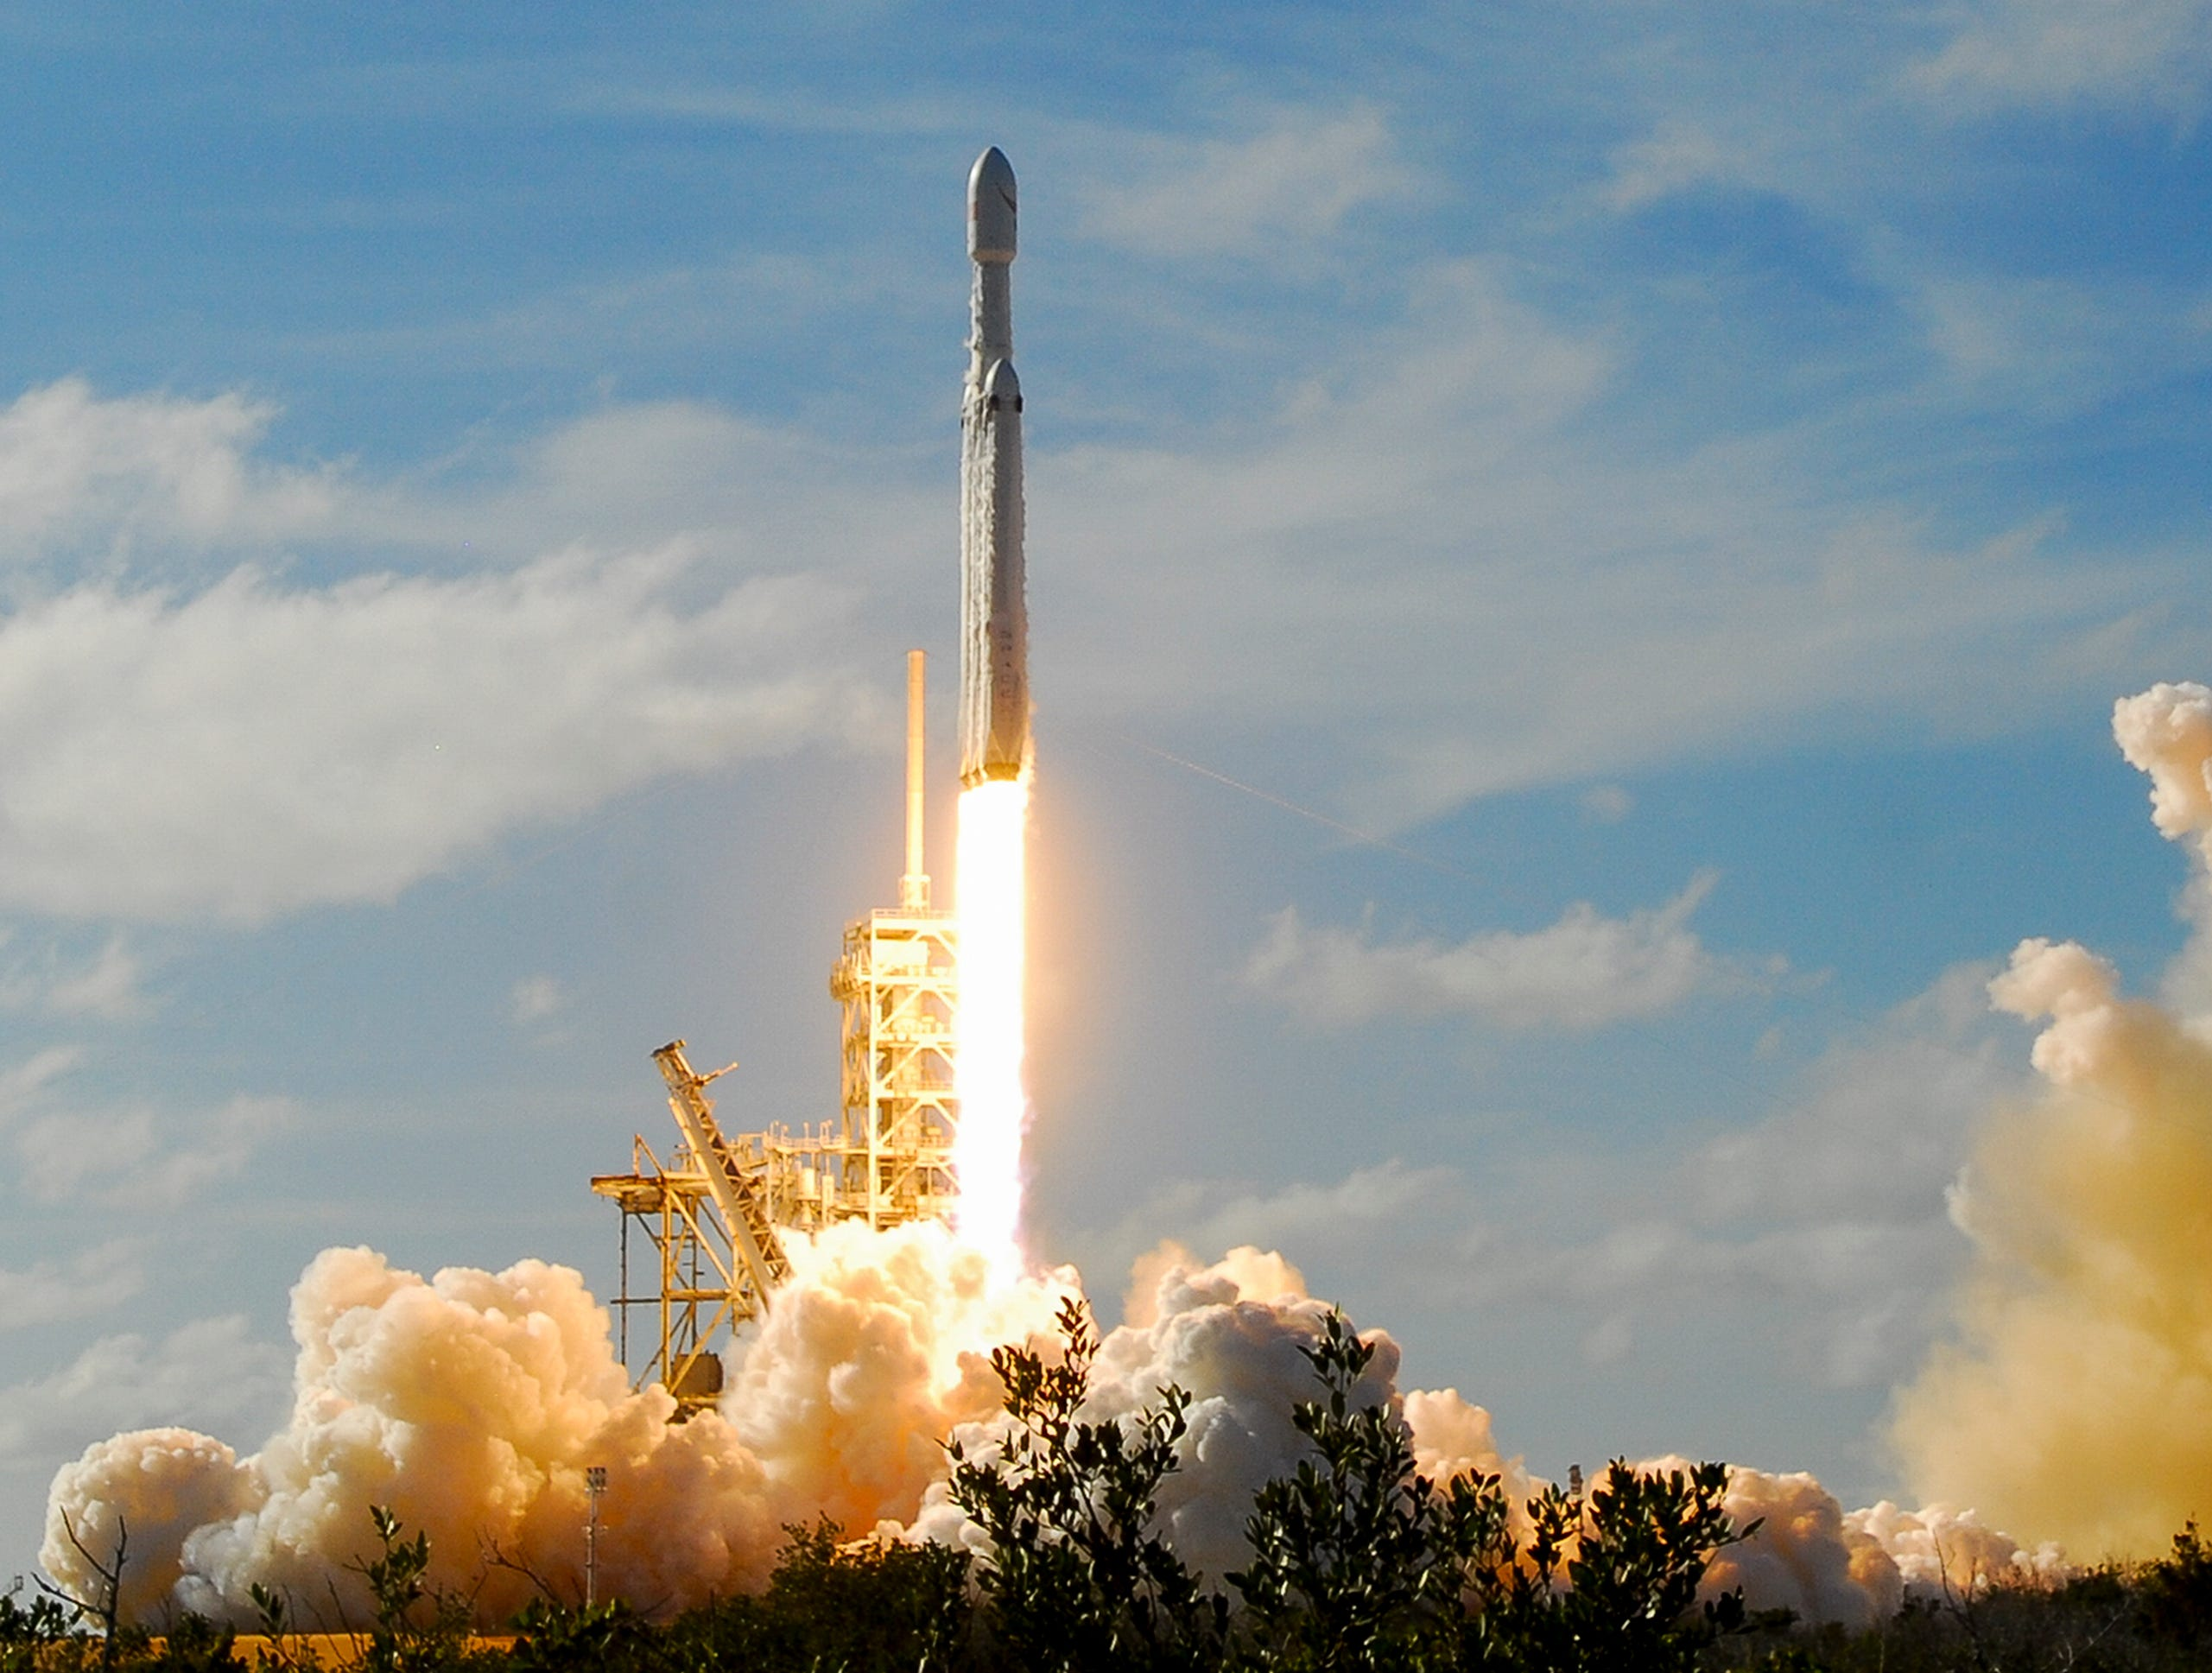 Feb. 6, 2018: SpaceX's newest rocket, the Falcon Heavy, lifts off on it first demonstration flight.